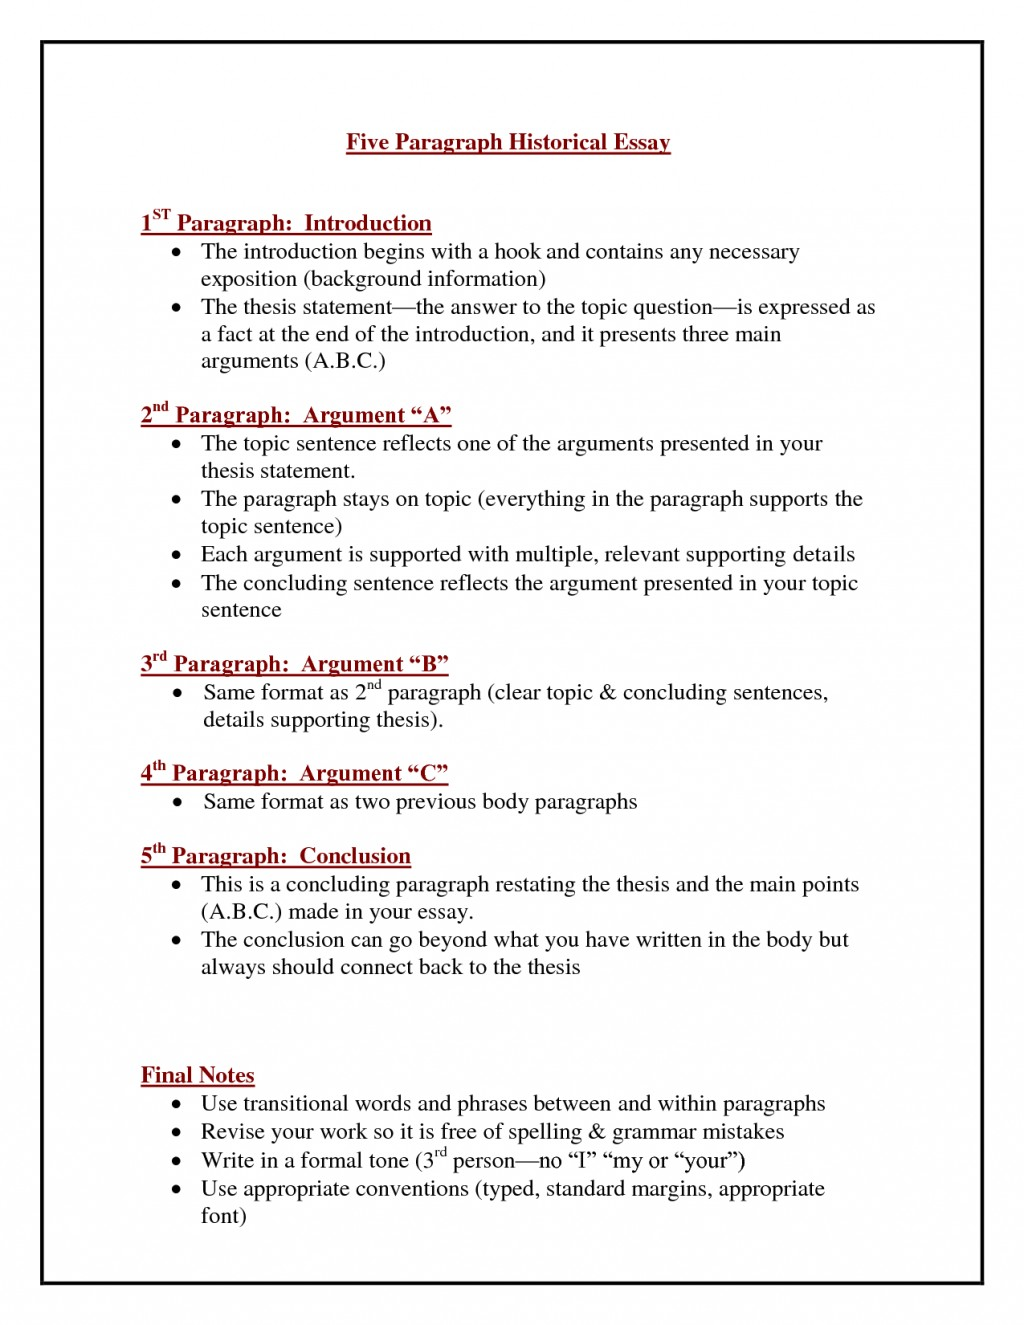 024 One Paragraph Essay Topics Magnificent Large